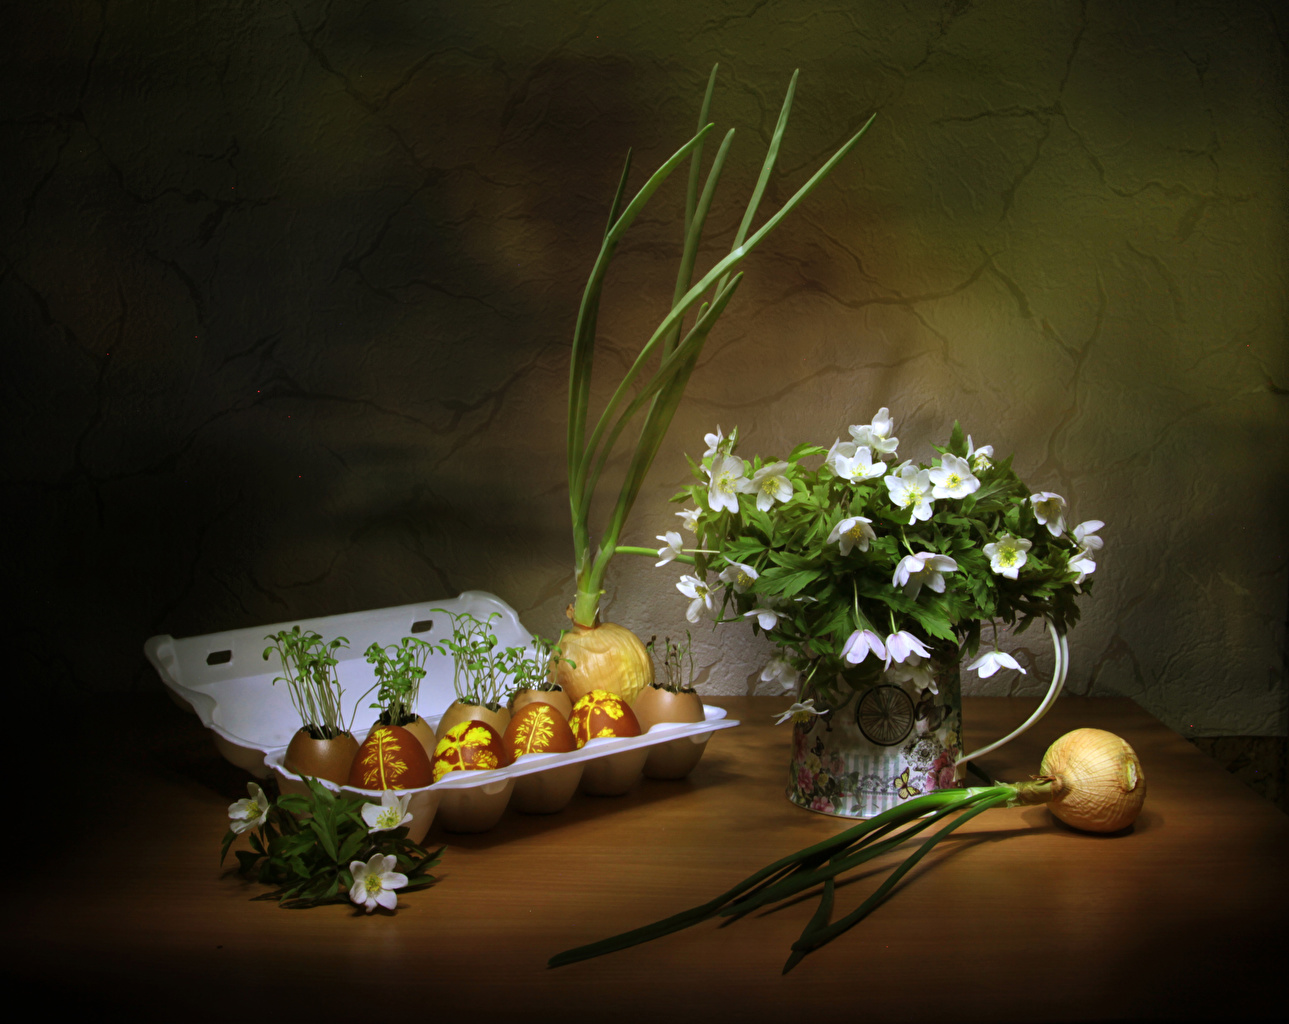 Picture Flowers Easter salad onions Onion Food egg Anemones Still-life flower Scallion Eggs anemone